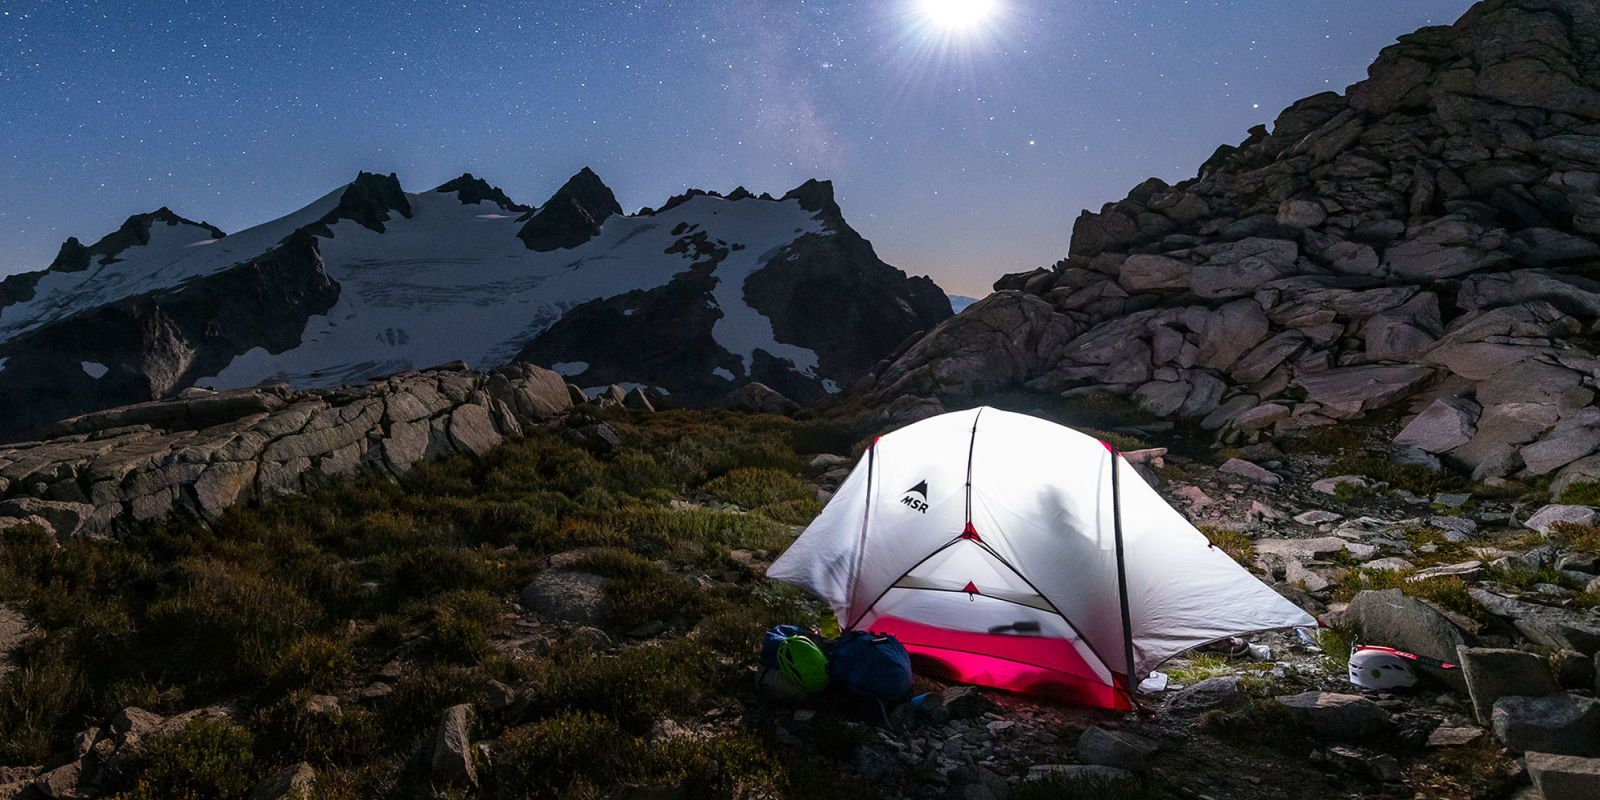 Stuff one of these top-rated backpacking tents into your overnight pack and head out to the mountains for some off-the-grid c&ing. & 11 Best Backpacking Tents for 2018 - Lightweight One and Two ...